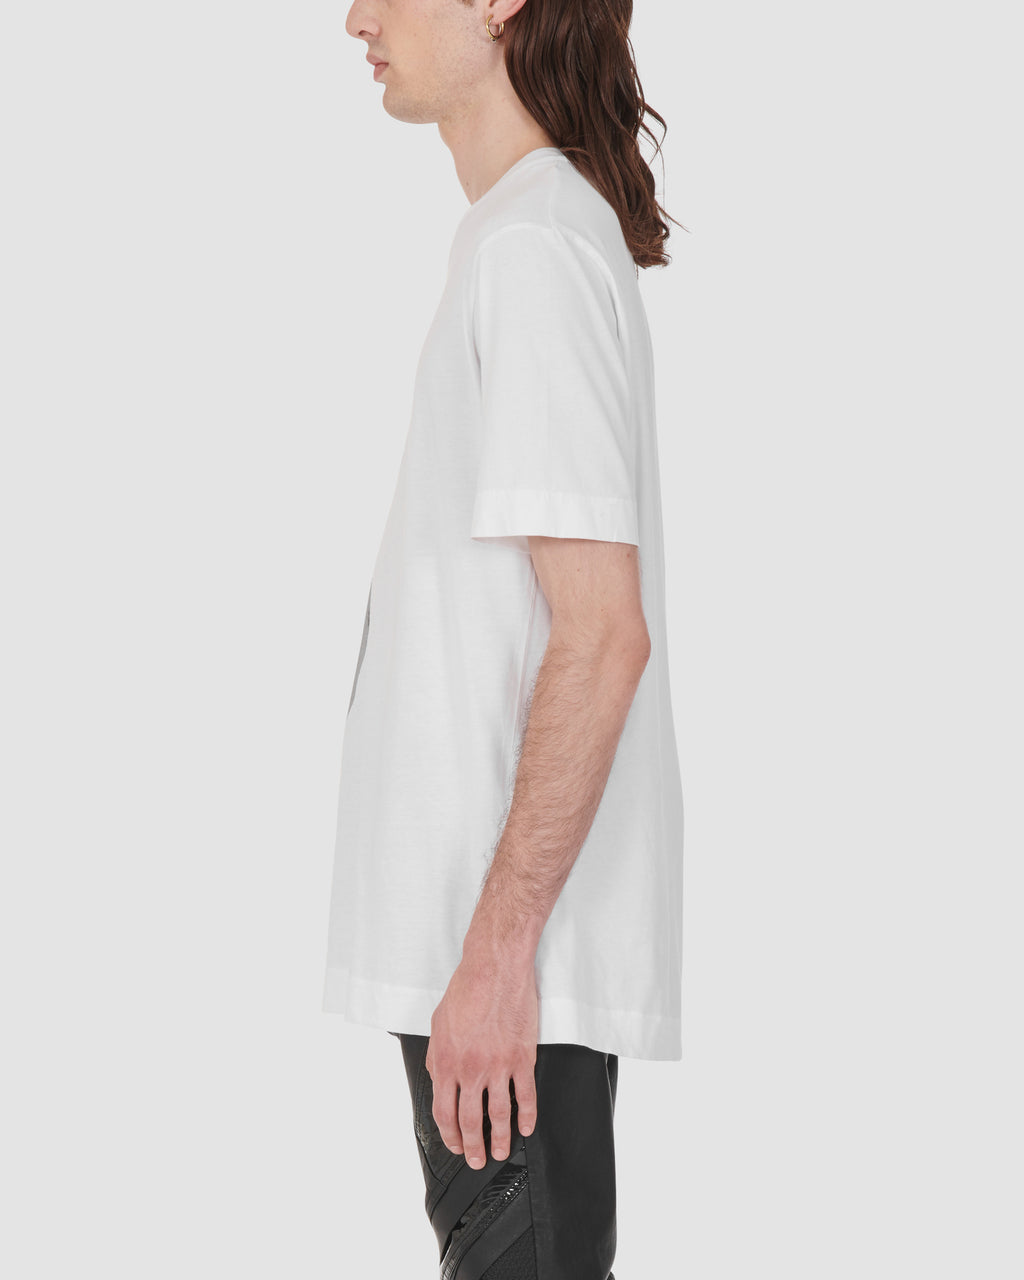 1017 ALYX 9SM | SS TEE W RUBBER PATCH AND PRINT | T-Shirt | Google Shopping, Man, MEN, S20, SS20, T-Shirts, WHITE